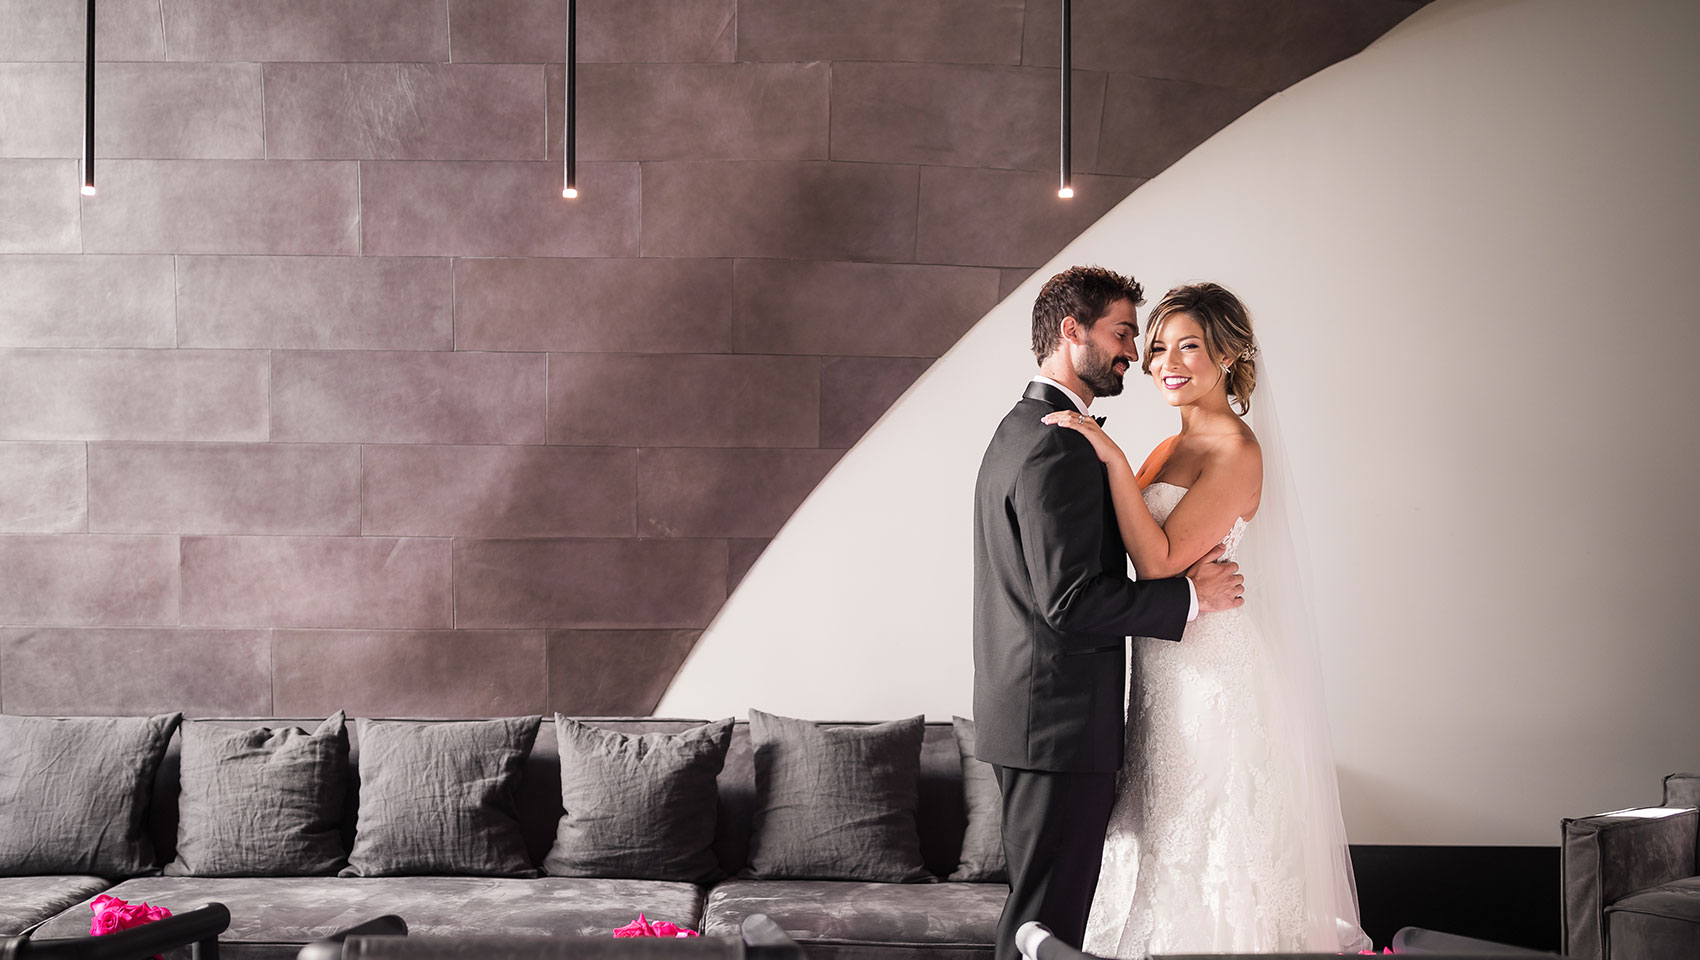 Kimpton La Peer Hotel Wedding ceremony West Hollywood